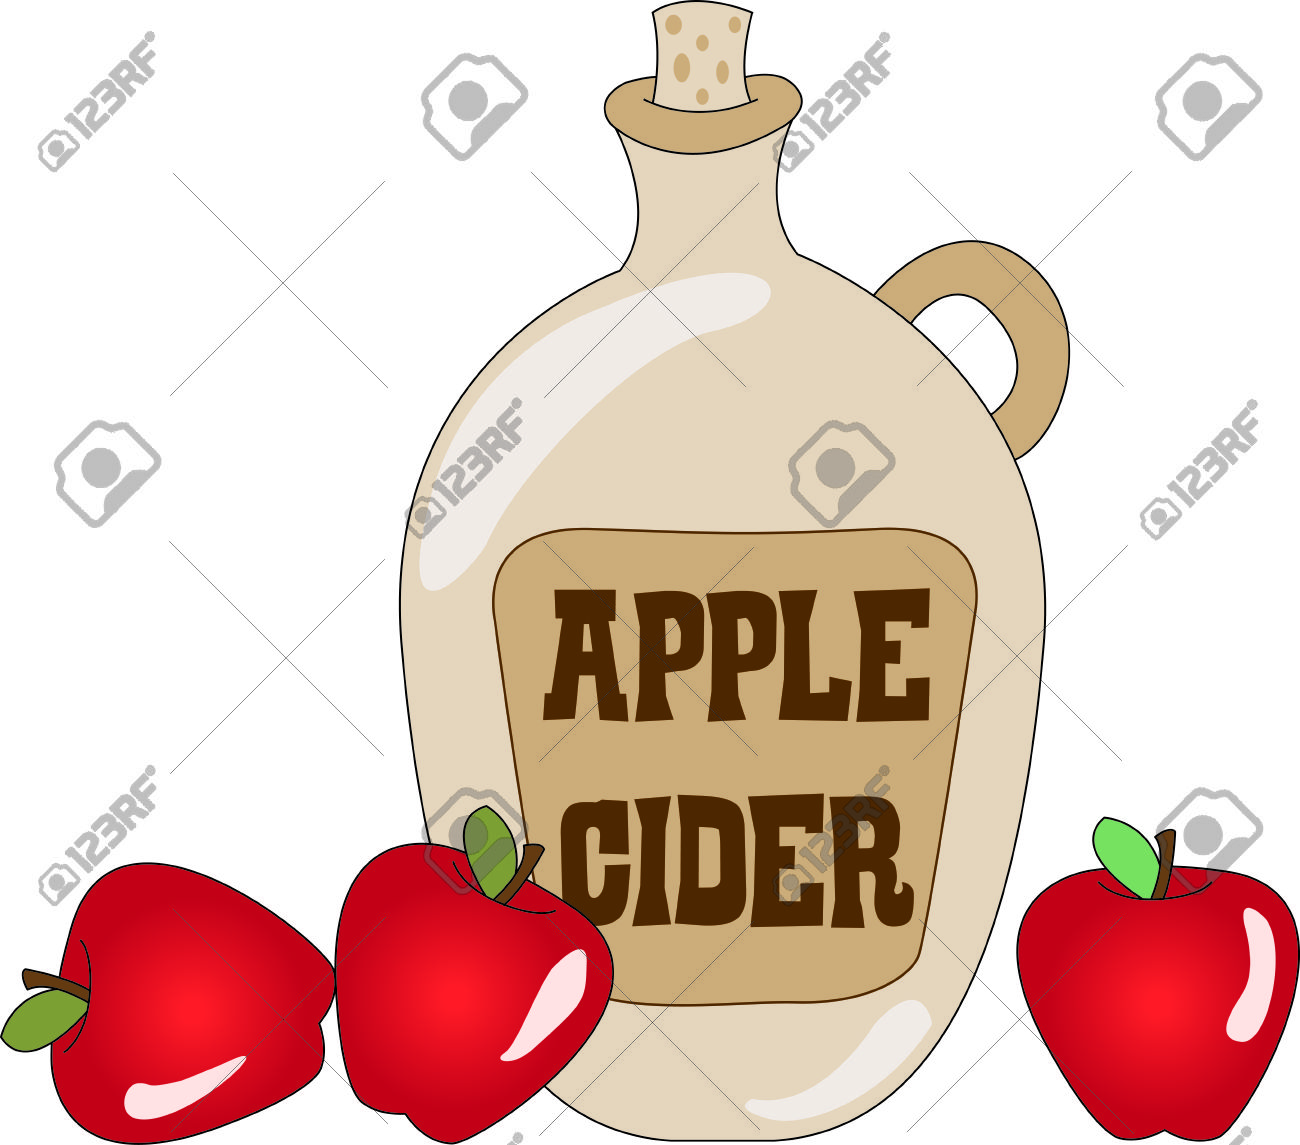 479 Apple Cider Stock Vector Illustration And Royalty Free Apple.